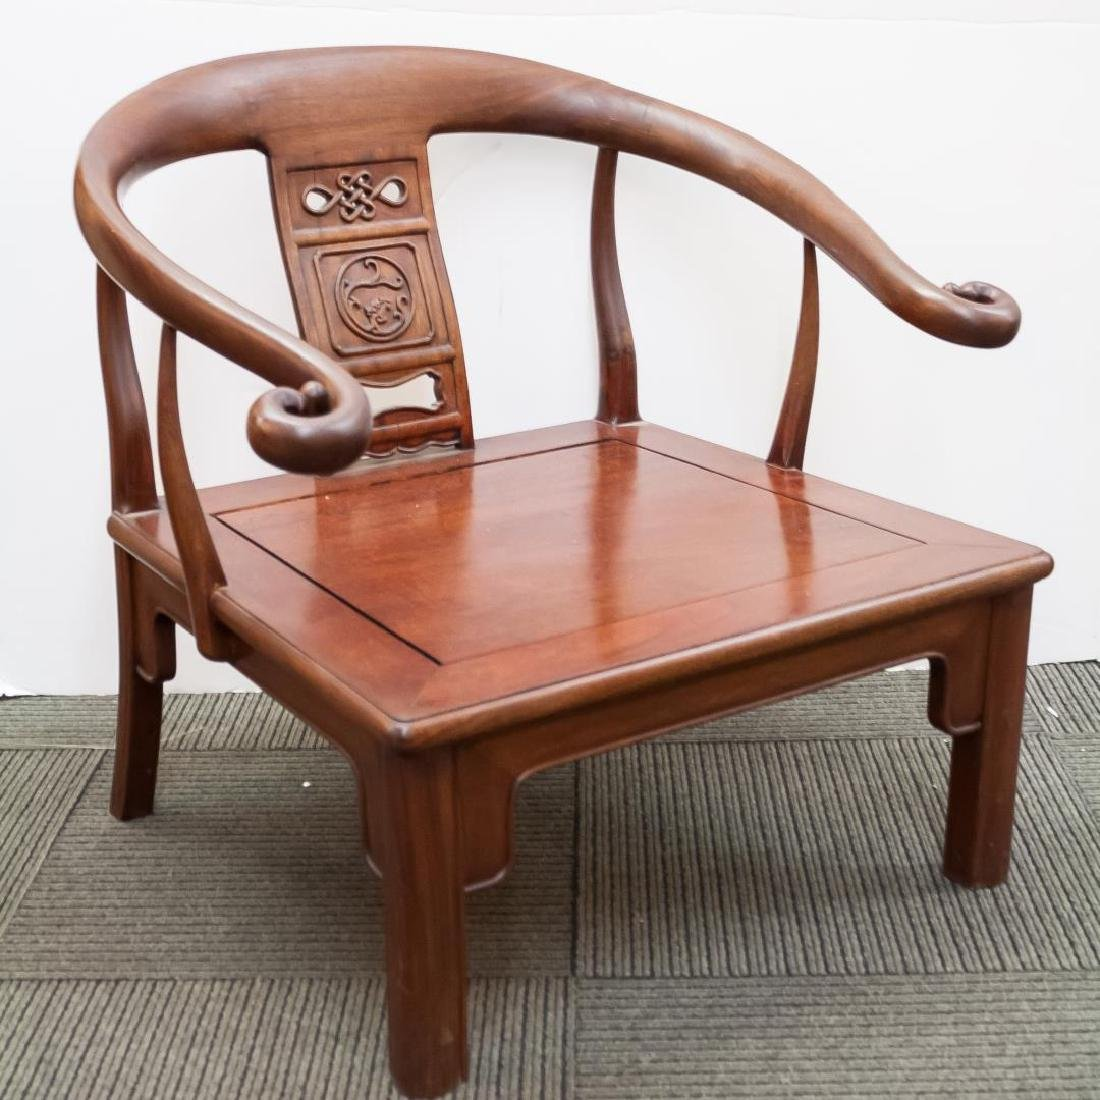 Chinese Arm Chair, Carved Wood with Horseshoe-Back